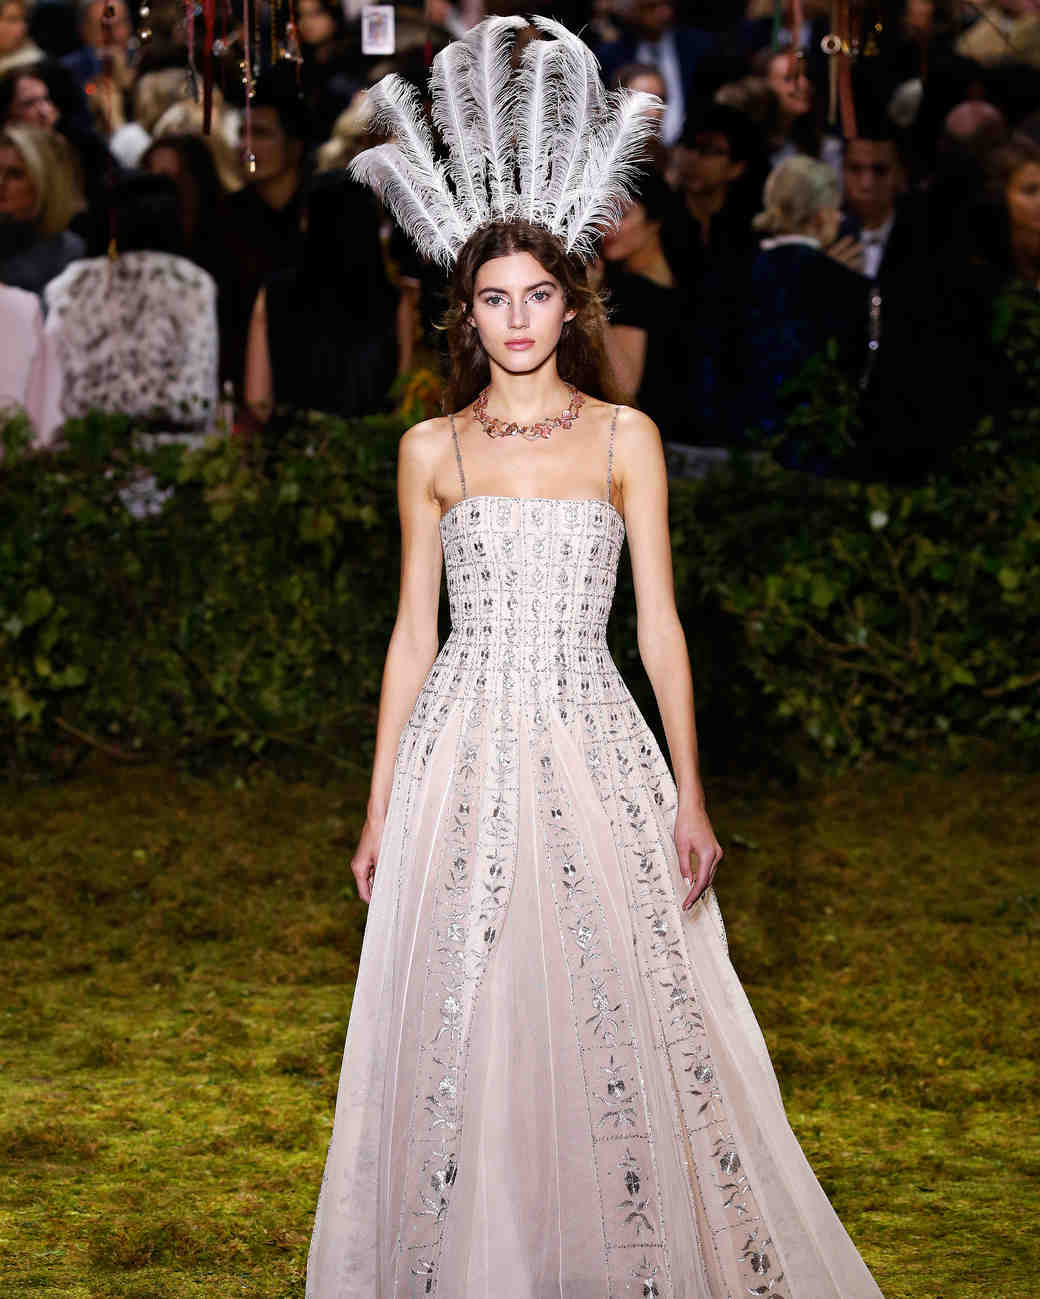 Christian Dior Wedding Gowns: The Most Bridal Looks From Paris Haute Couture Fashion